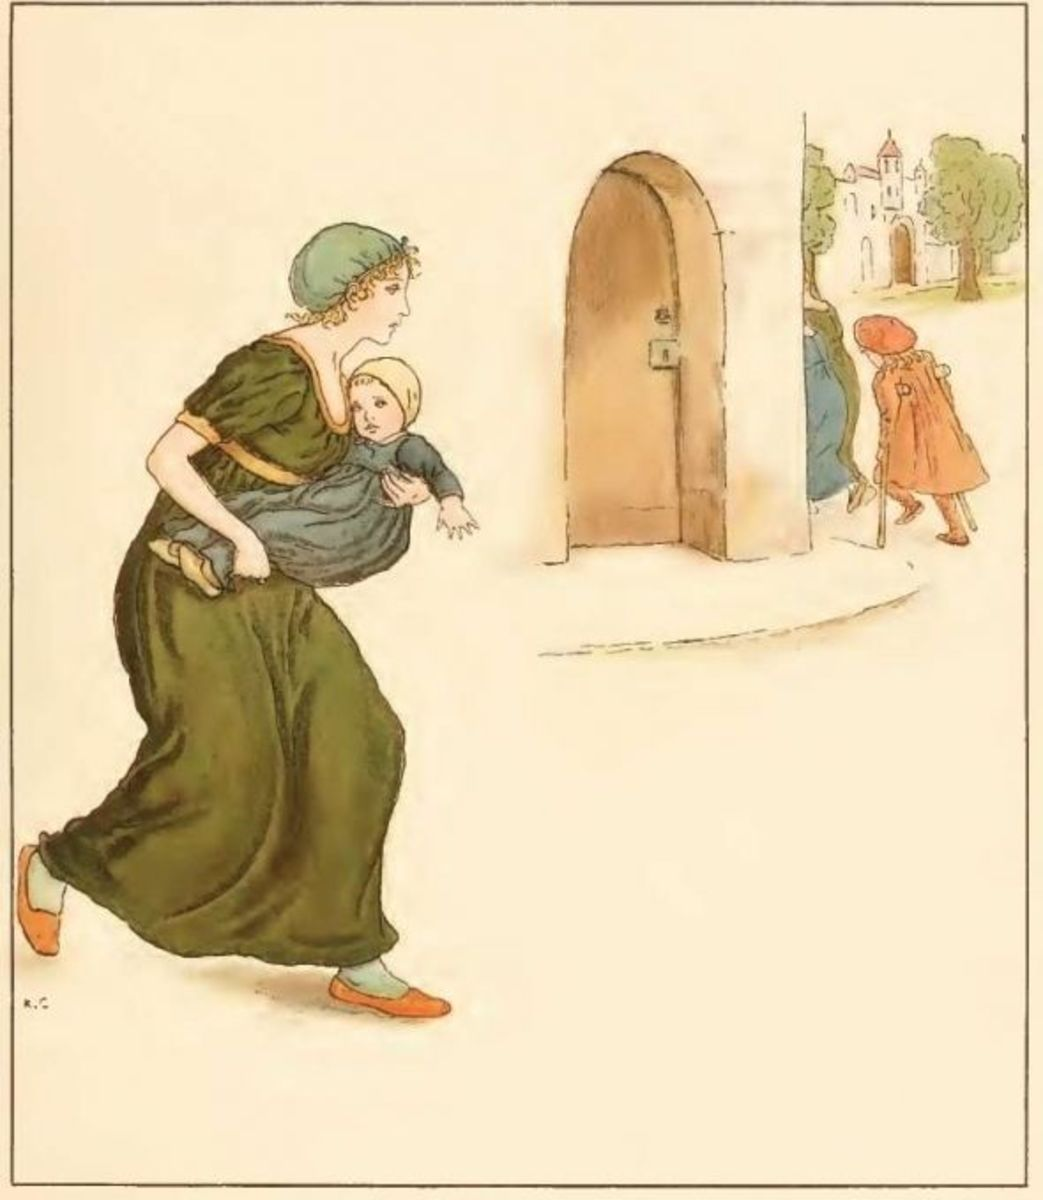 According to the poem The Pied Piper of Hamelin only two handicapped kids stayed in town